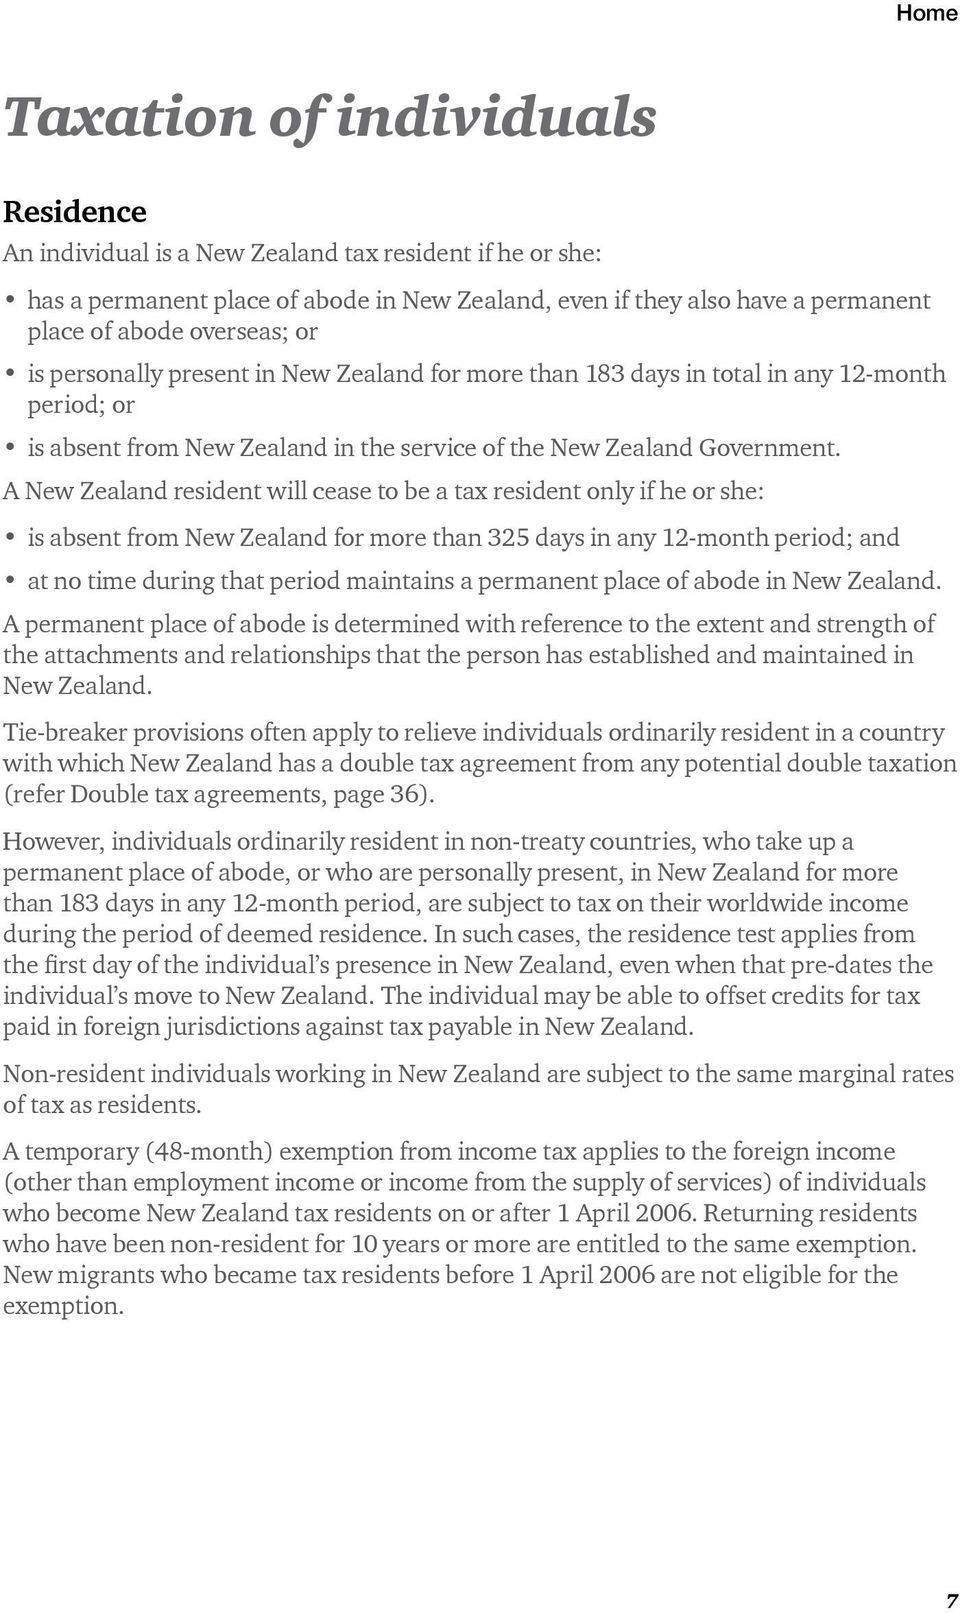 A New Zealand resident will cease to be a tax resident only if he or she: is absent from New Zealand for more than 325 days in any 12-month period; and at no time during that period maintains a